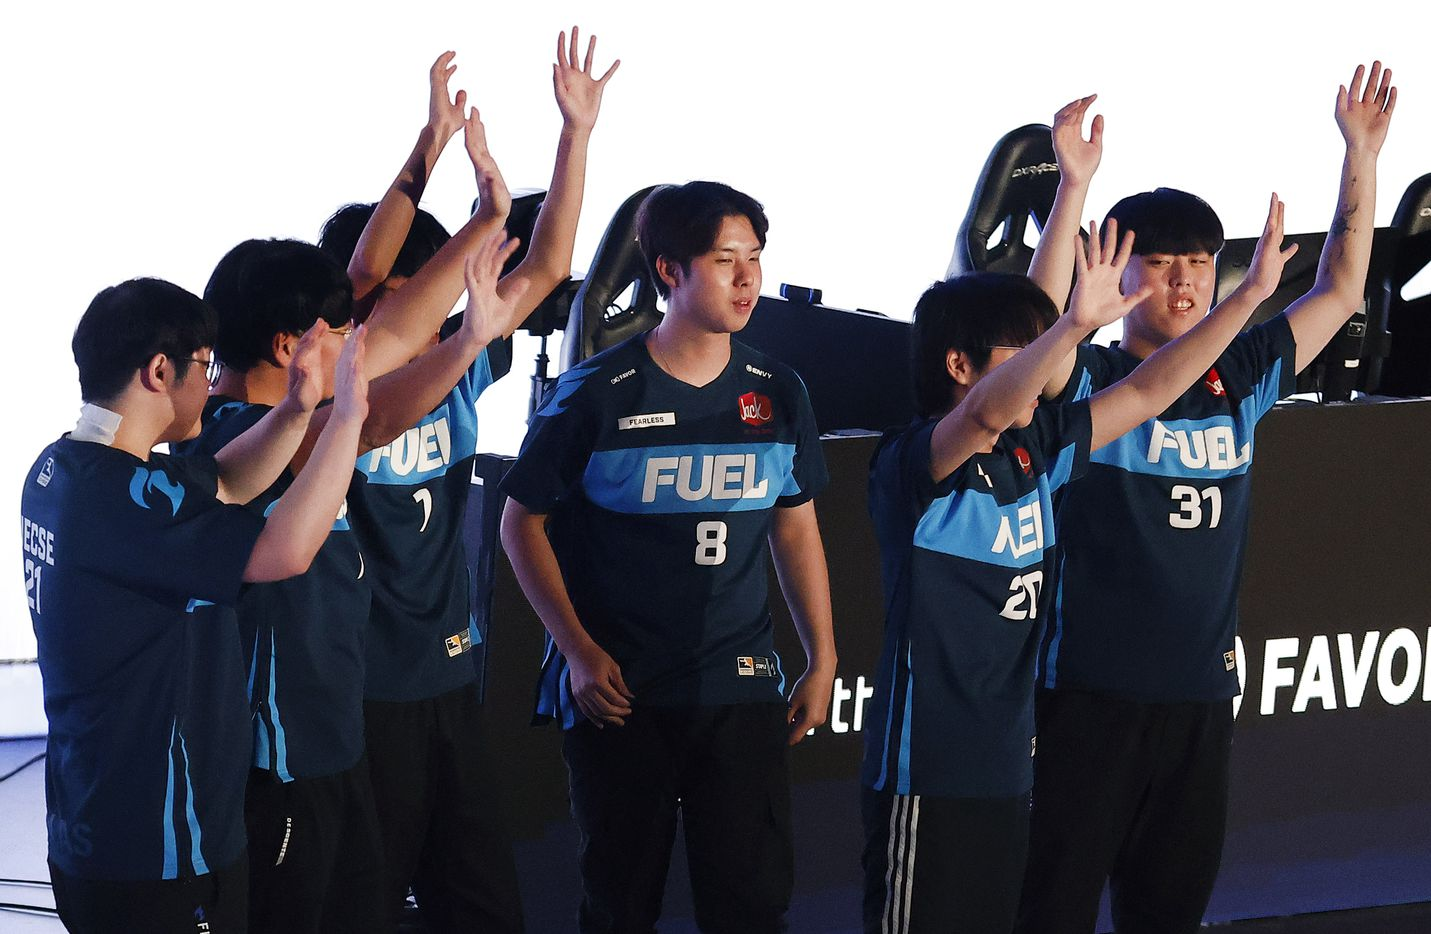 The Dallas Fuel team acknowledges their fans after defeating the Houston Outlaws in their Overwatch League match at Esports Stadium Arlington Friday, July 9, 2021. The Fuel defeated Houston in The Battle for Texas, 3-0. It was the first in-person live competition for fans in over a year. Houston competed from their hometown. (Tom Fox/The Dallas Morning News)